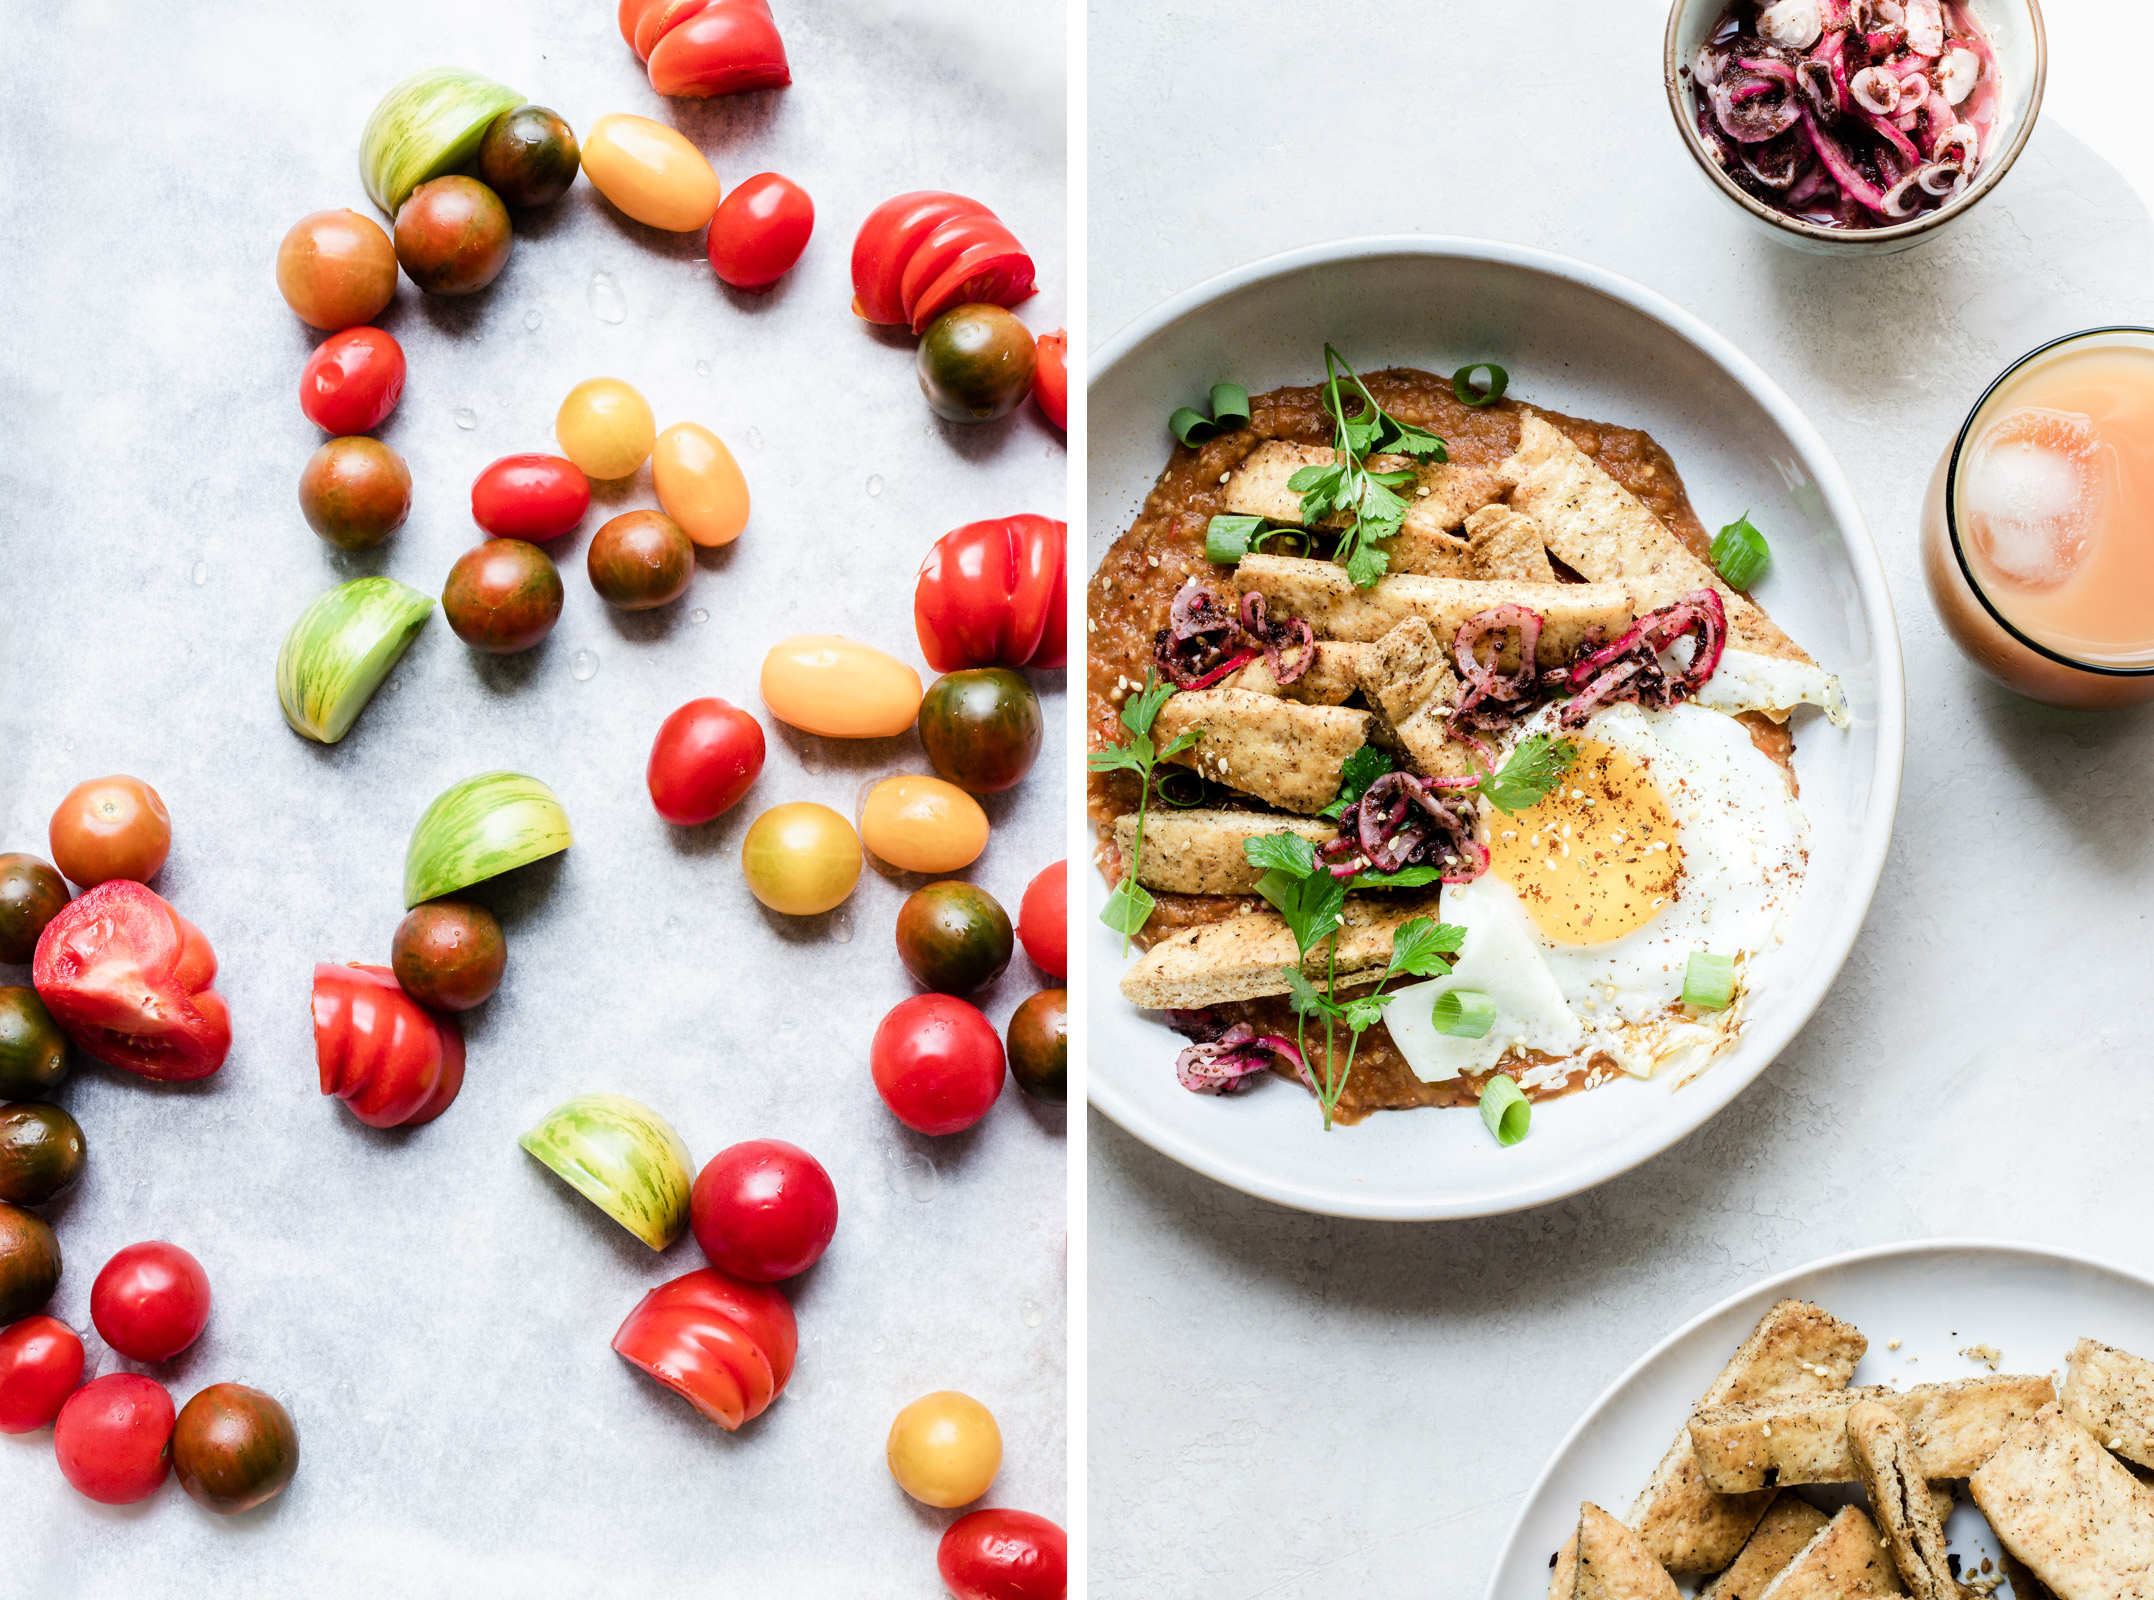 Dual image: assorted heirloom cherry tomatoes on the left, a bowl of eggplant pitaquiles with sumac onions on the right